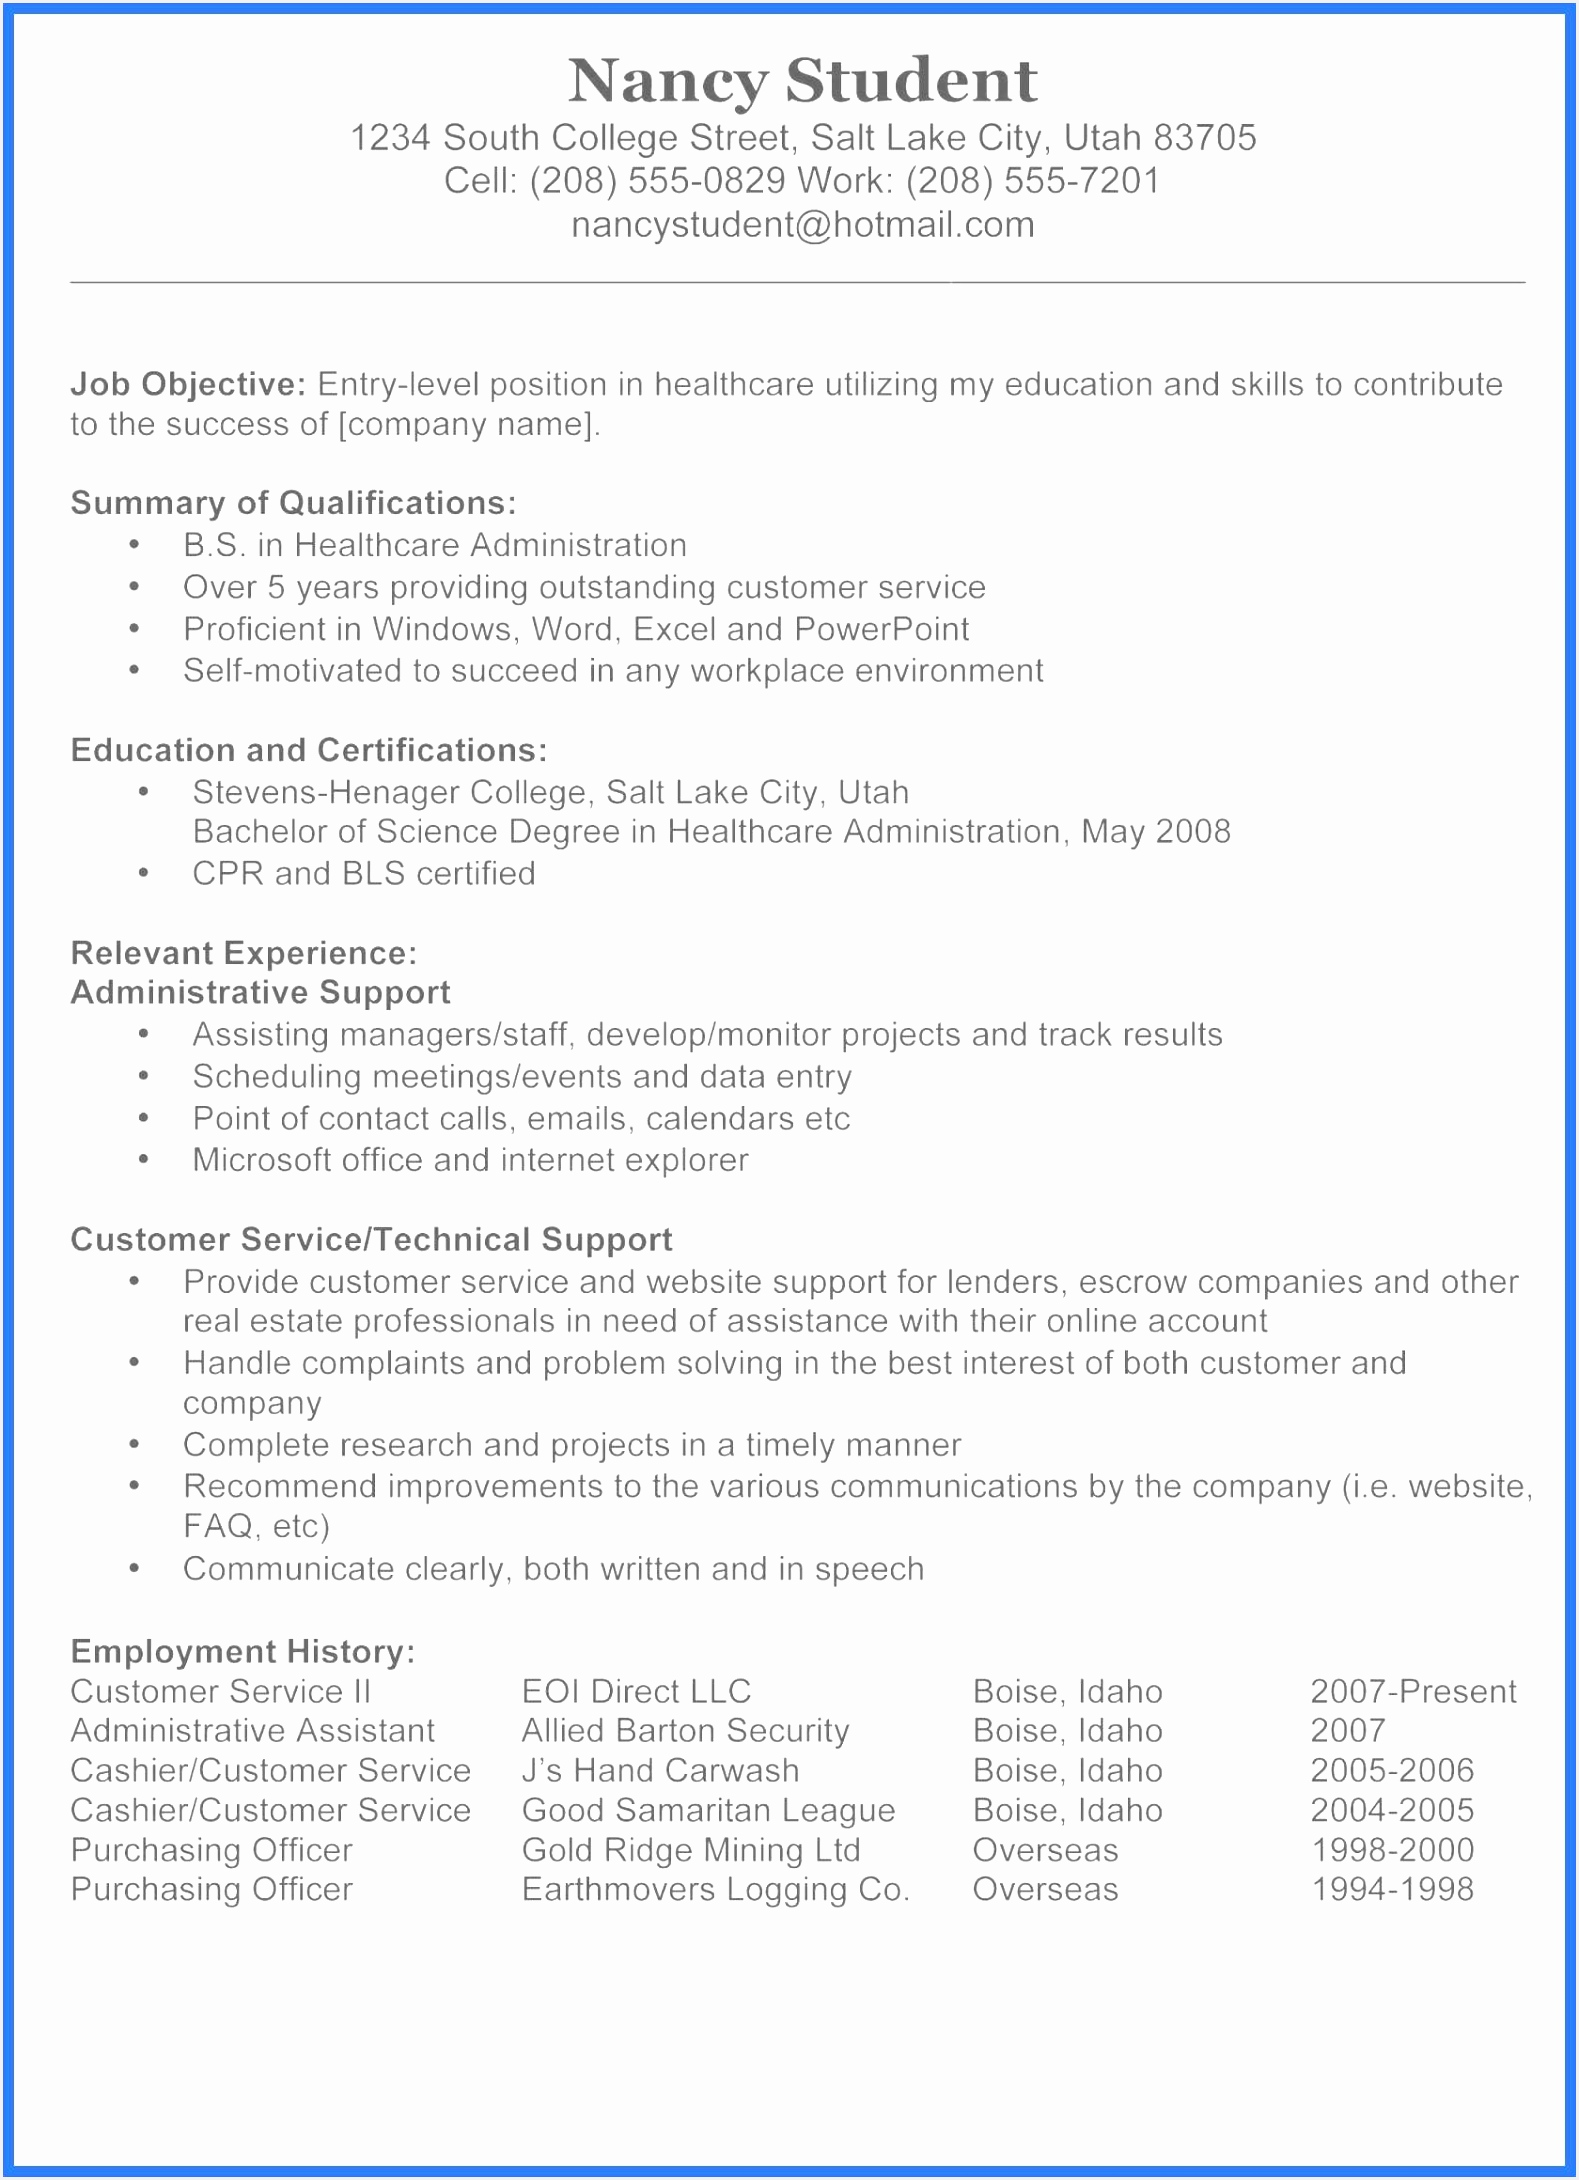 Sample Resume Cover Letter Word Doc New Fresh New Resume Sample Best Resume Cover Luxury Formatted 21801579jeoae